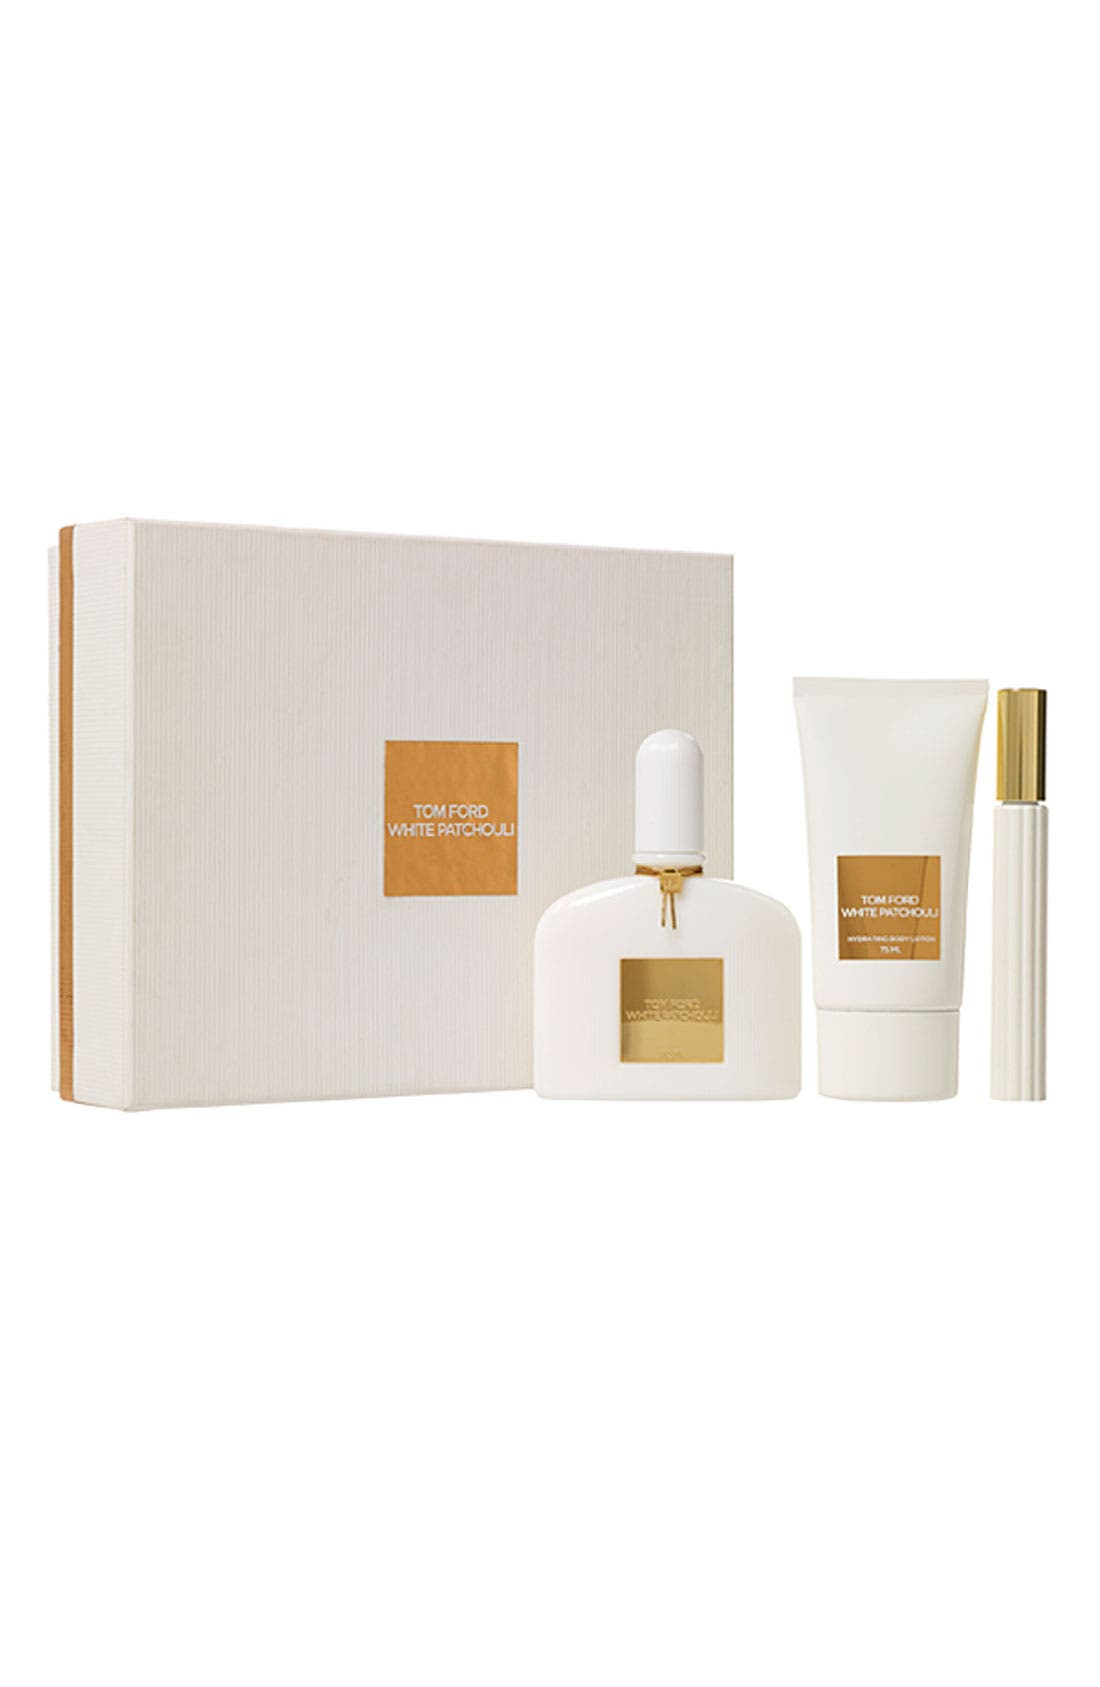 TOM FORD 'White Patchouli' Gift Set, Main, color, 000